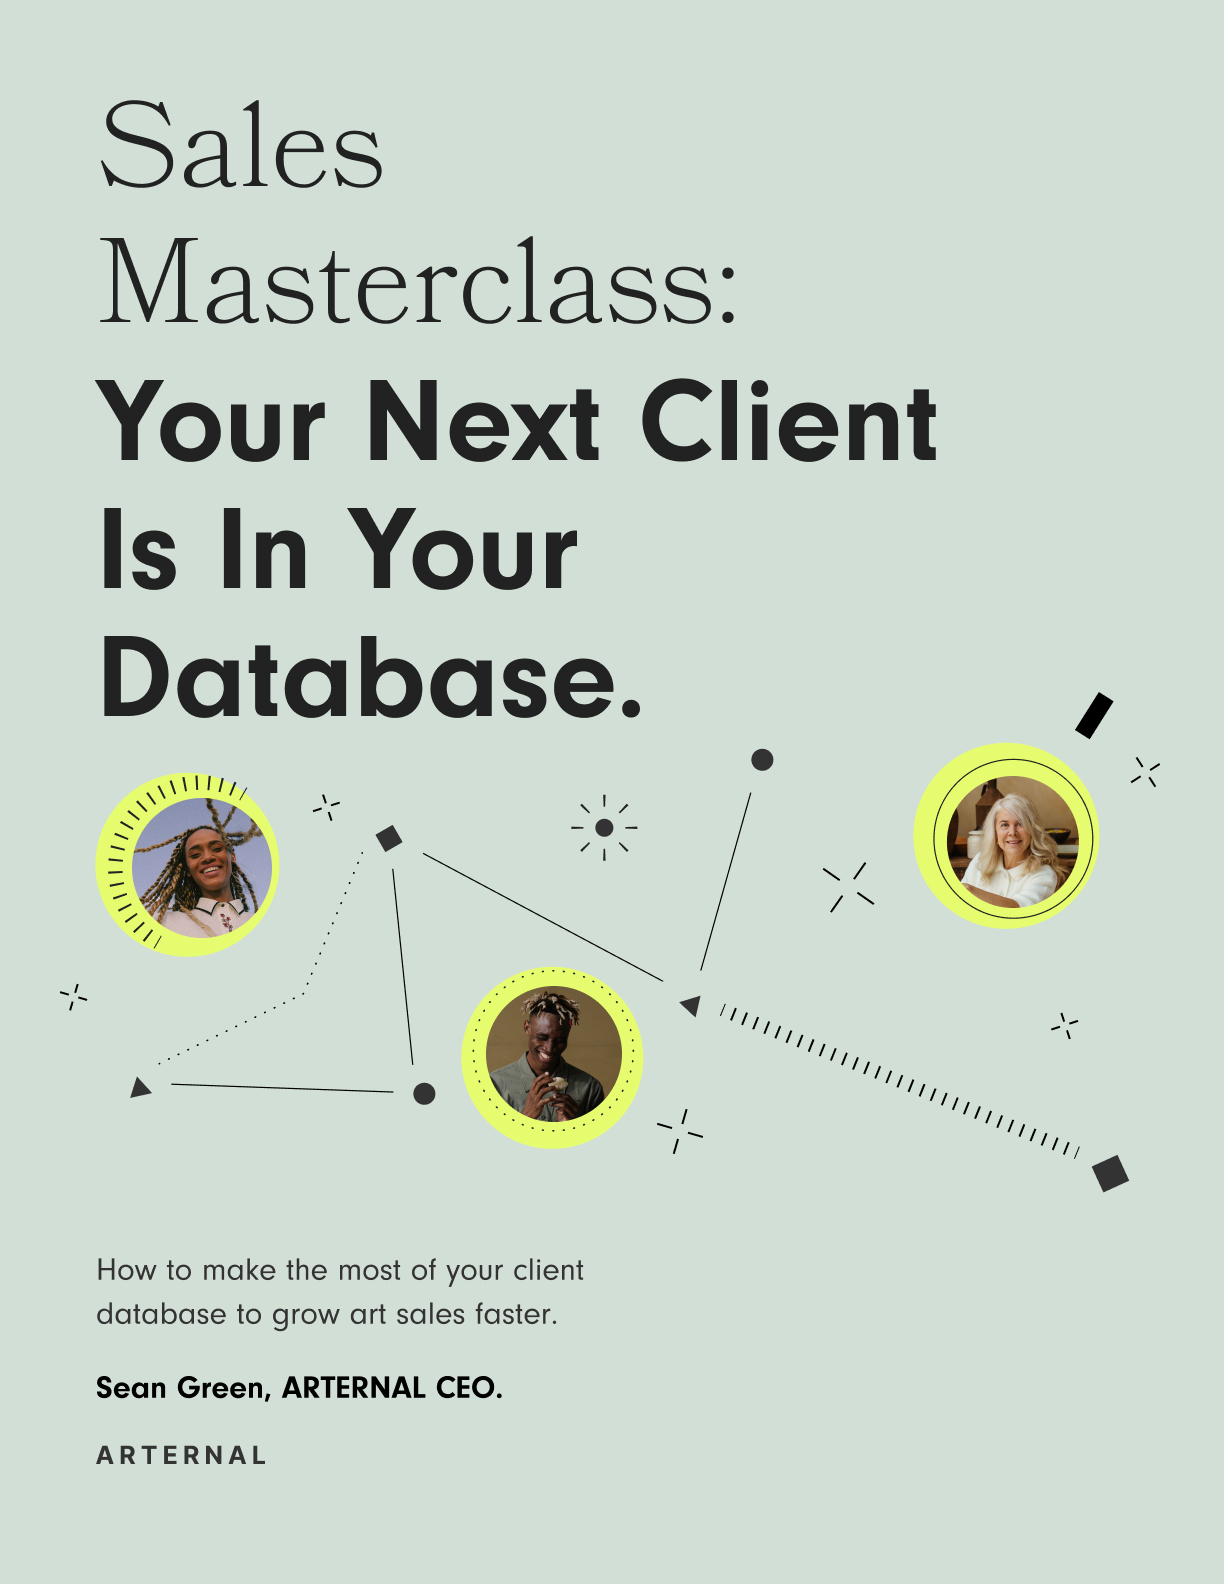 Sales Masterclass: Your Next Client is in Your Database